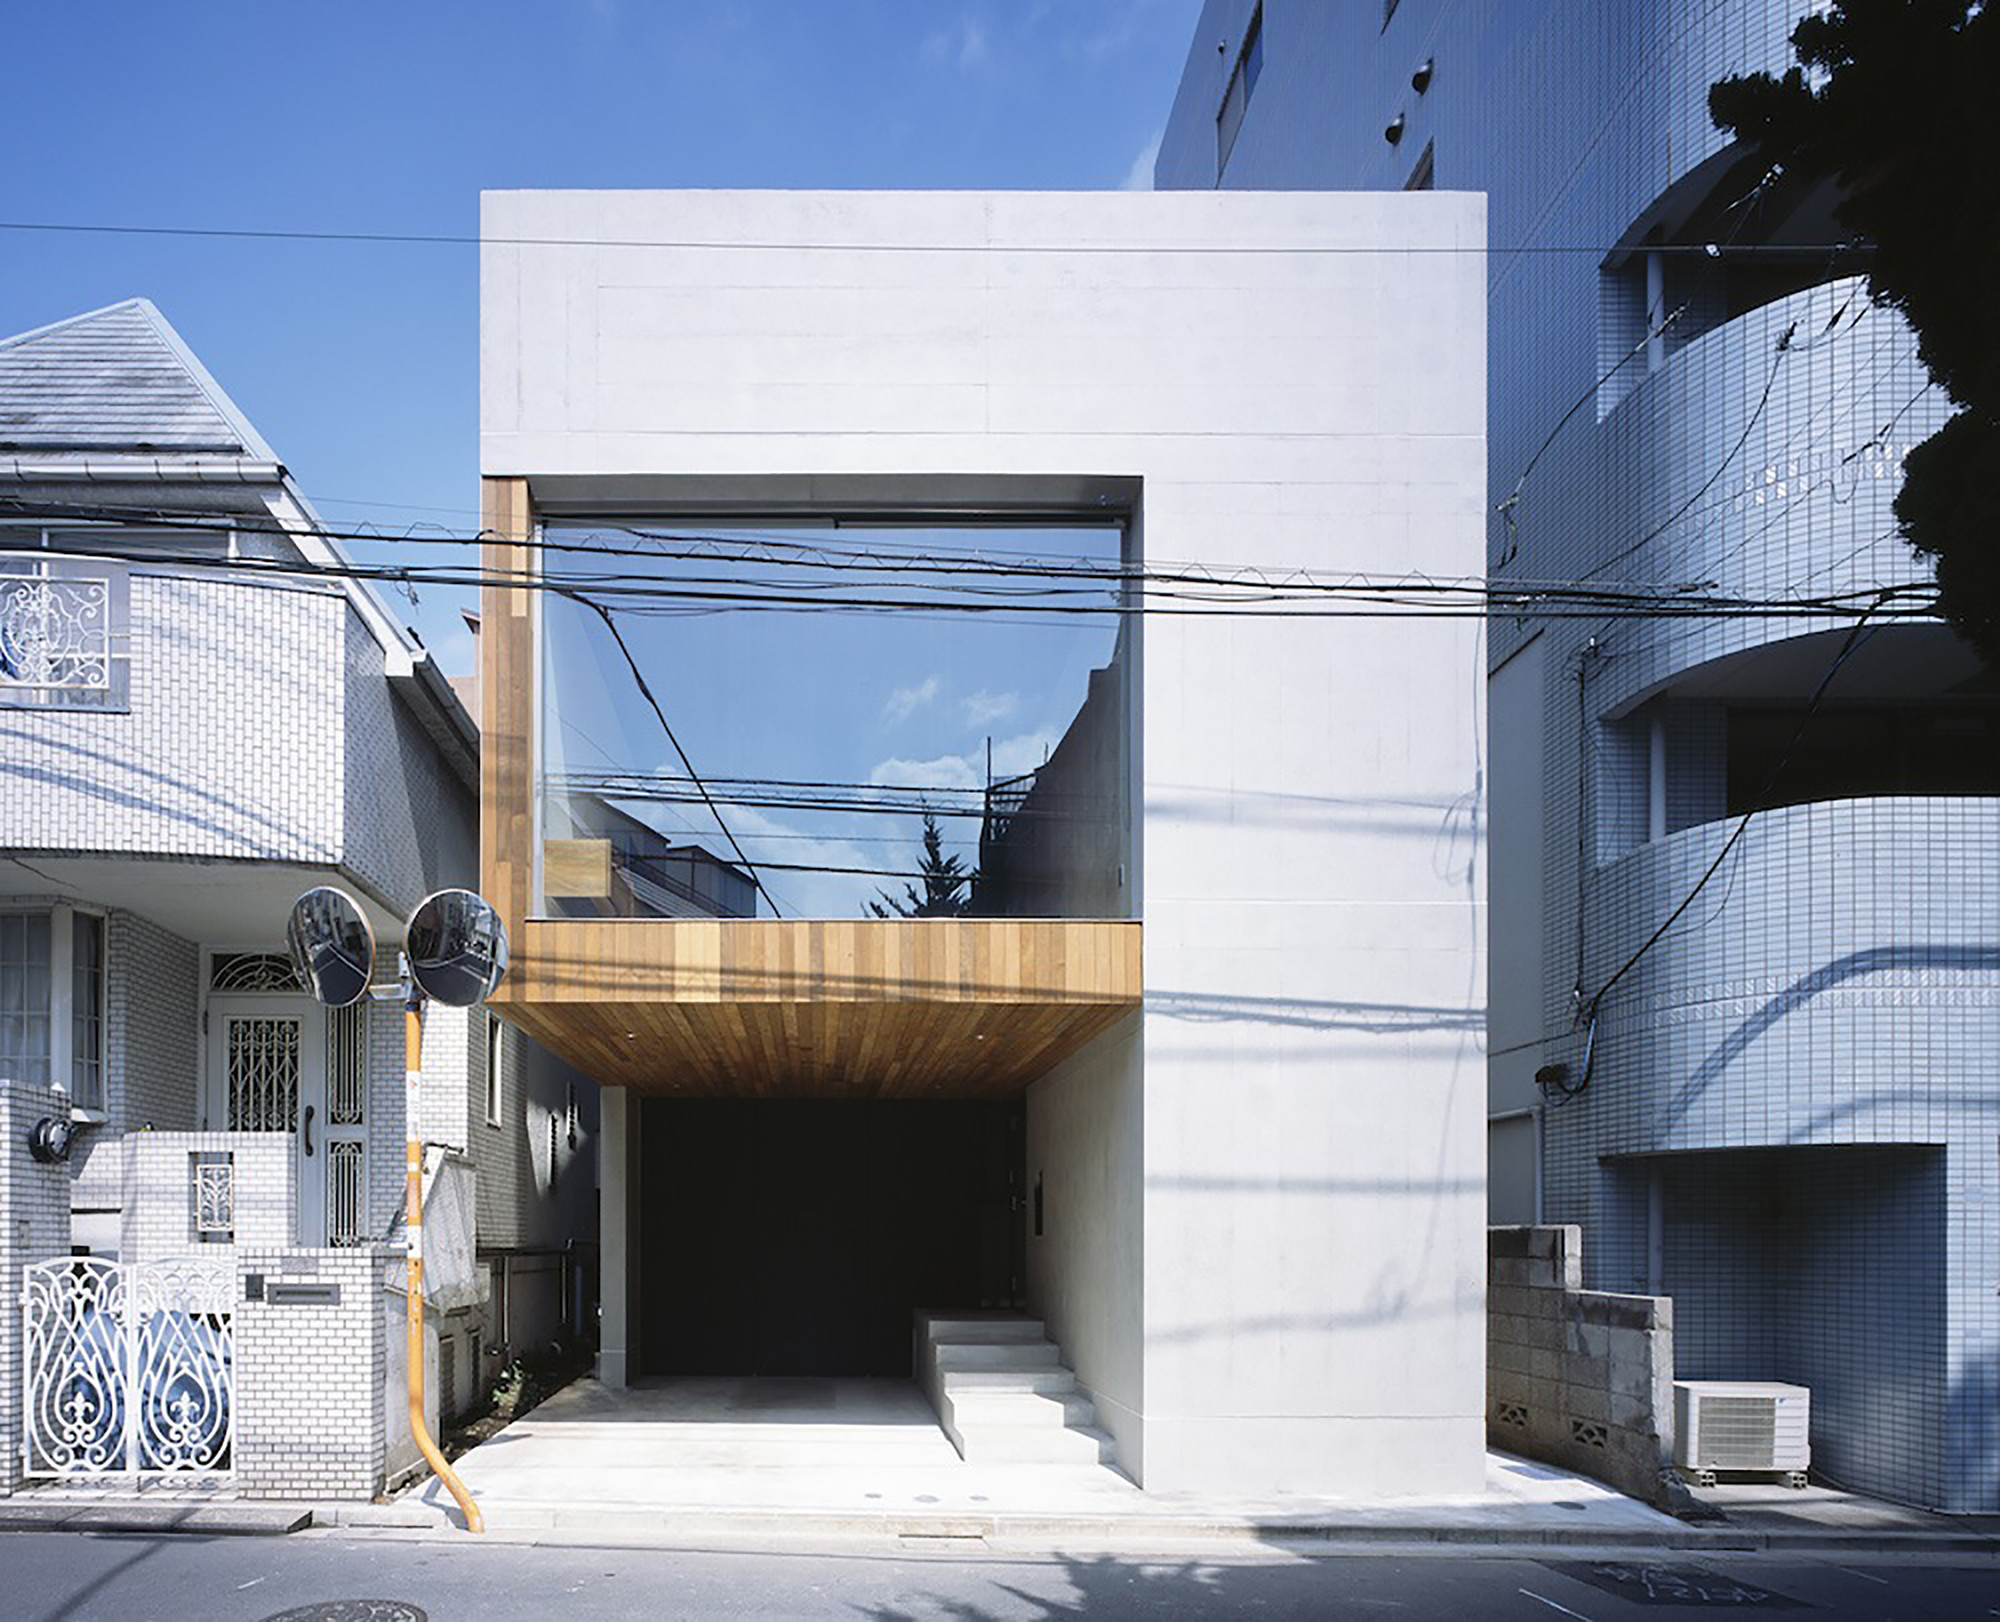 frame apollo architects associates masao nishikawa